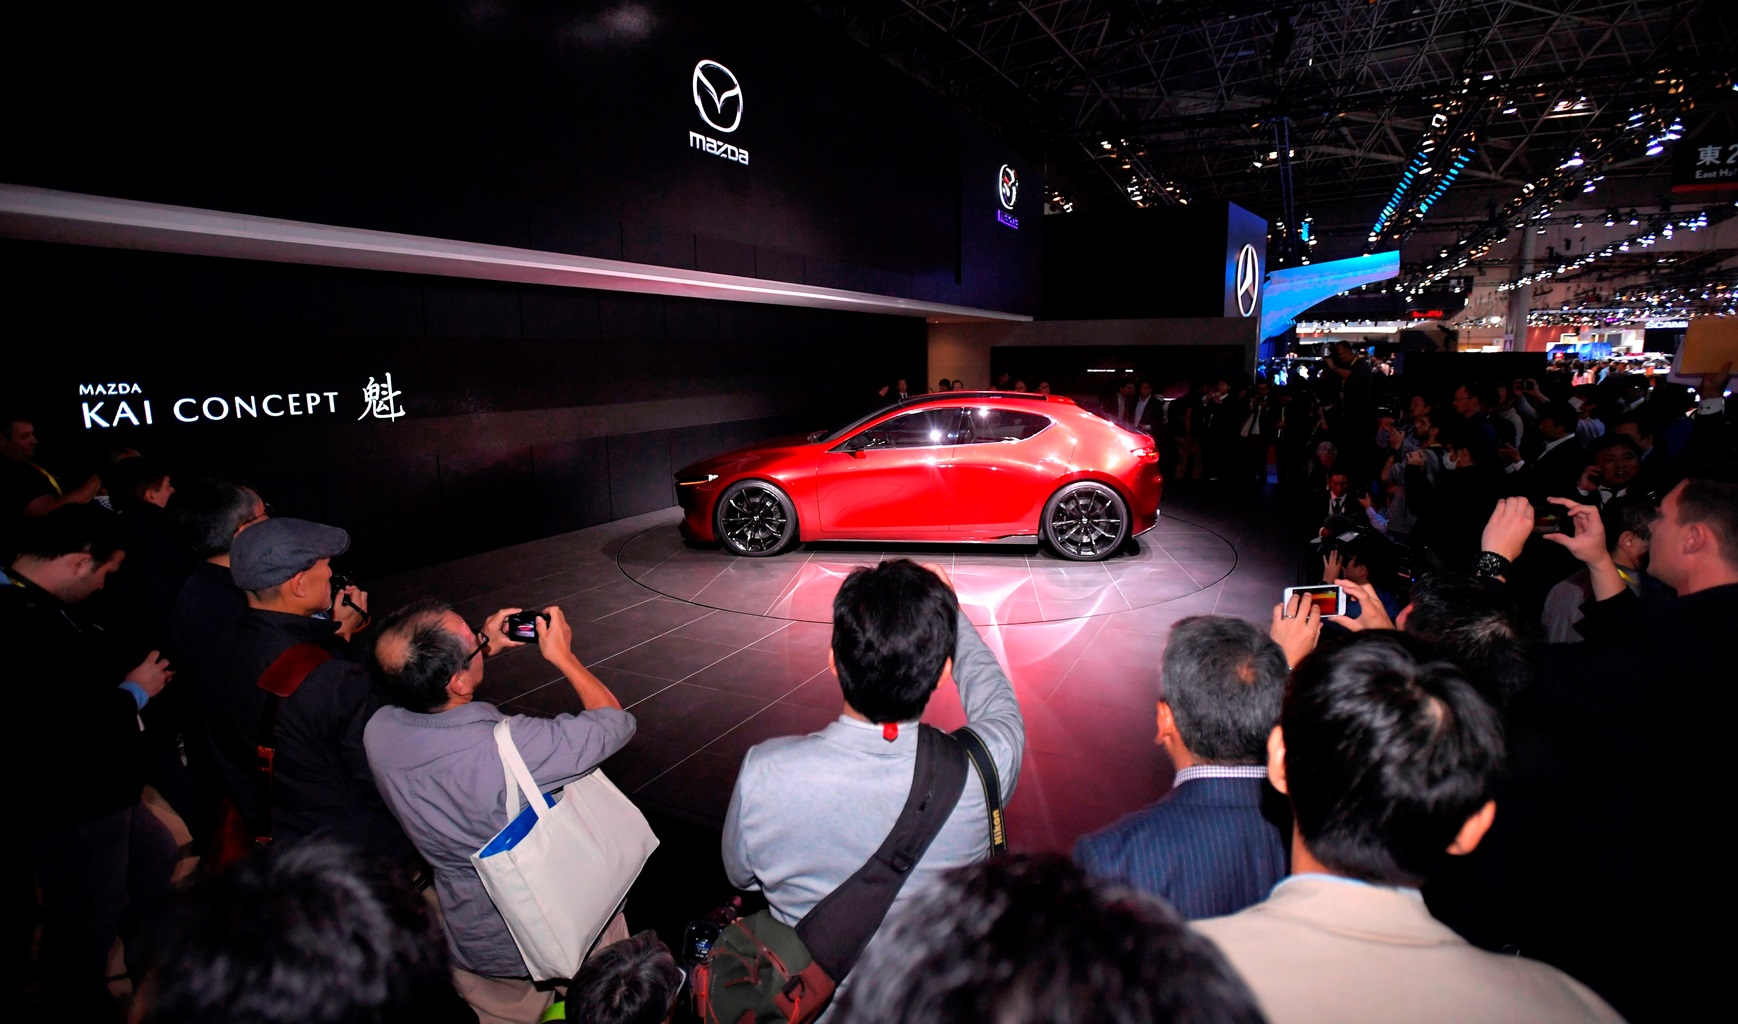 2c9dc95ef1 We revealed two new concept cars in Tokyo this year. Now we d like to  introduce the Mazda designers and engineers who created these models and  explain the ...